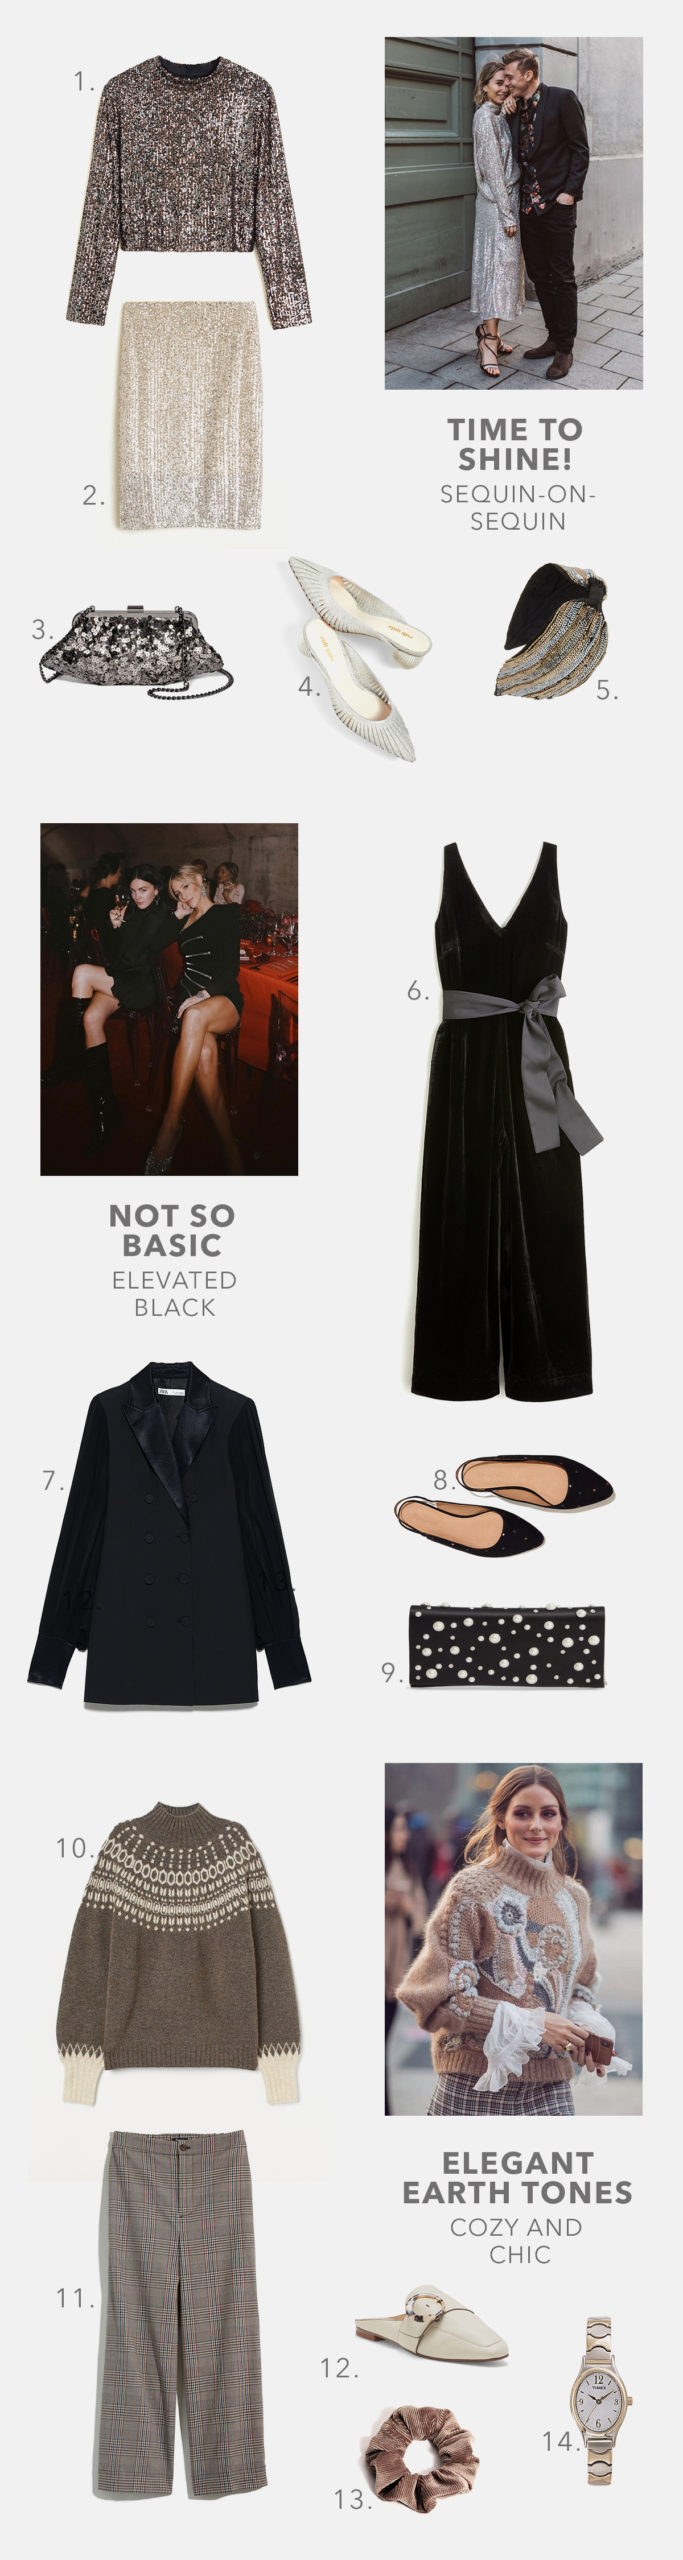 last minute holiday outfit ideas